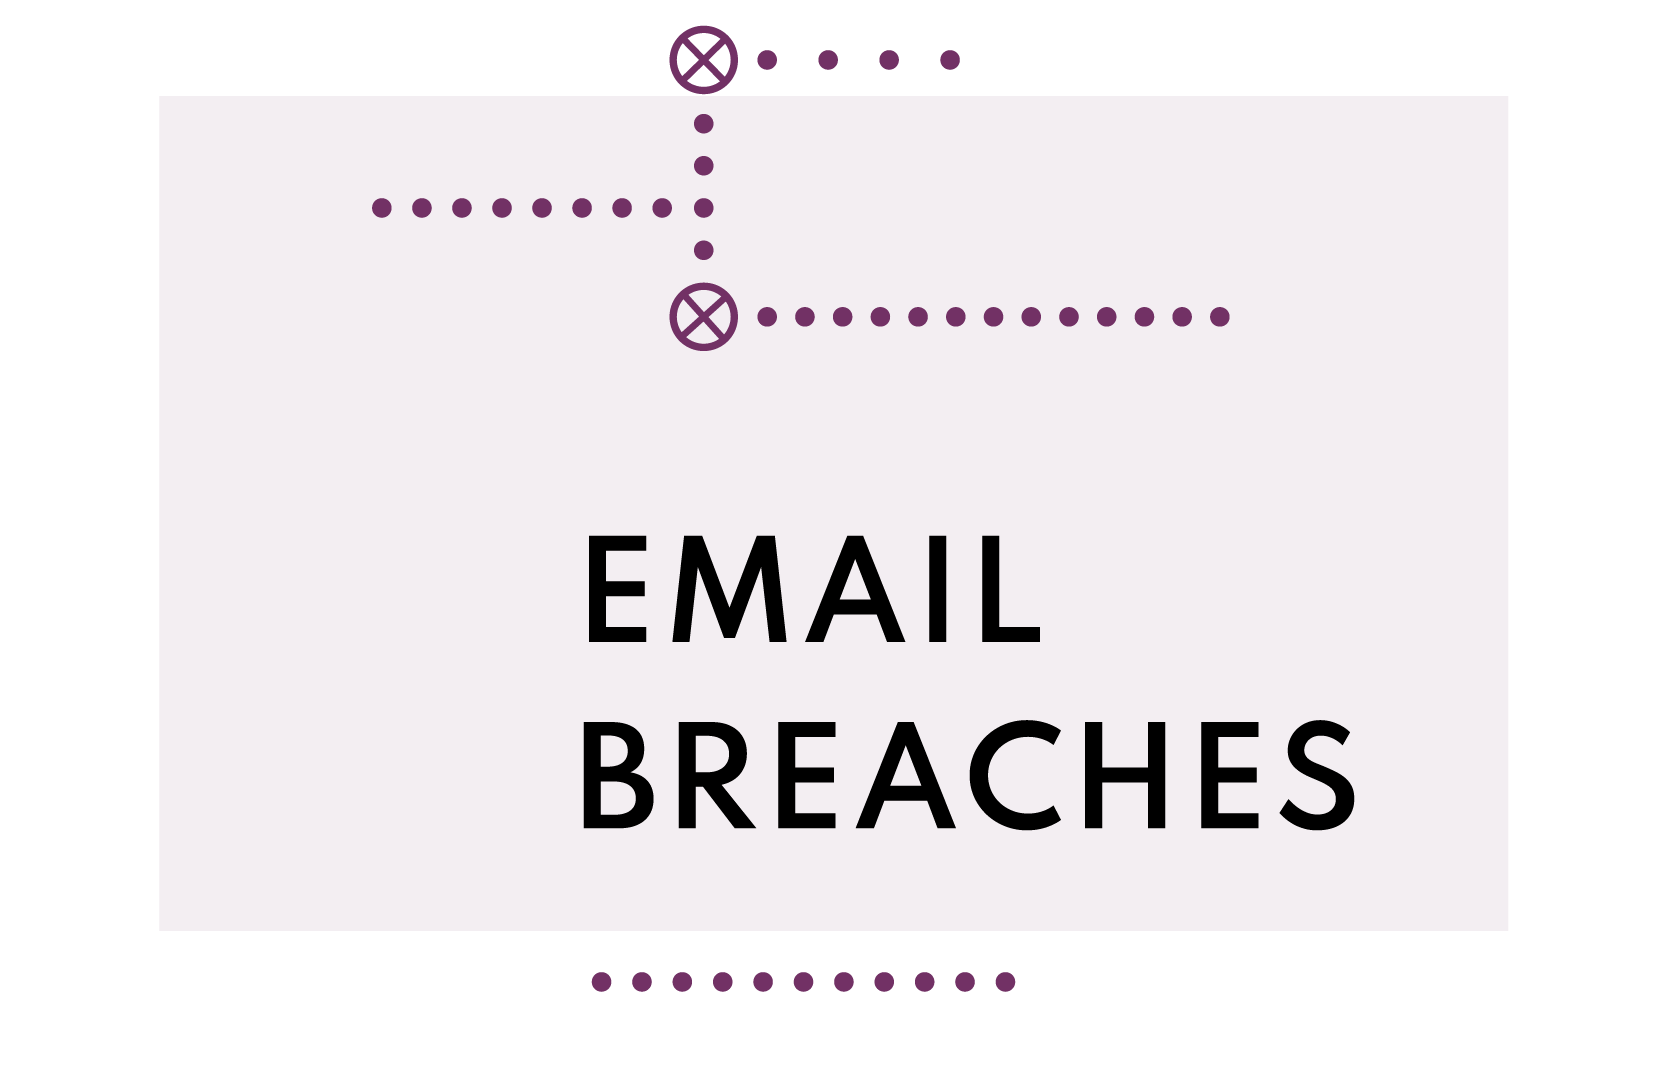 icons_Email Breaches